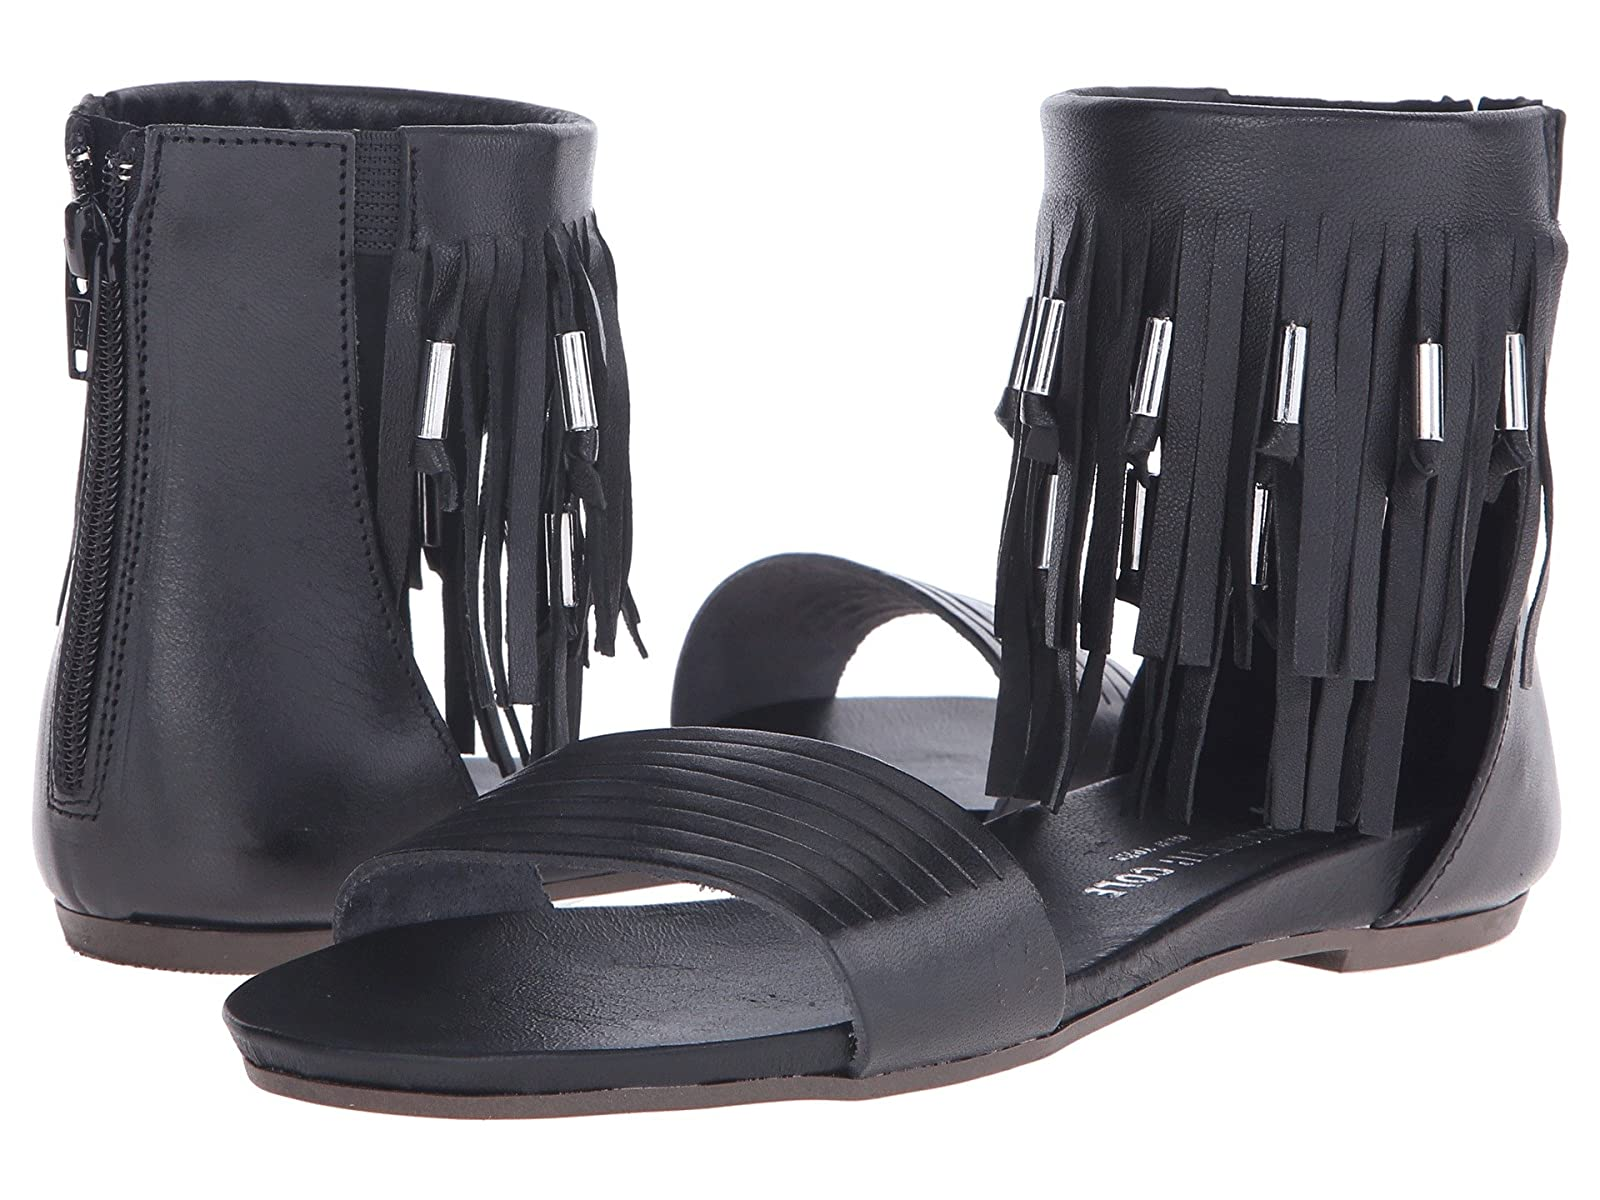 Kenneth Cole New York EllieCheap and distinctive eye-catching shoes